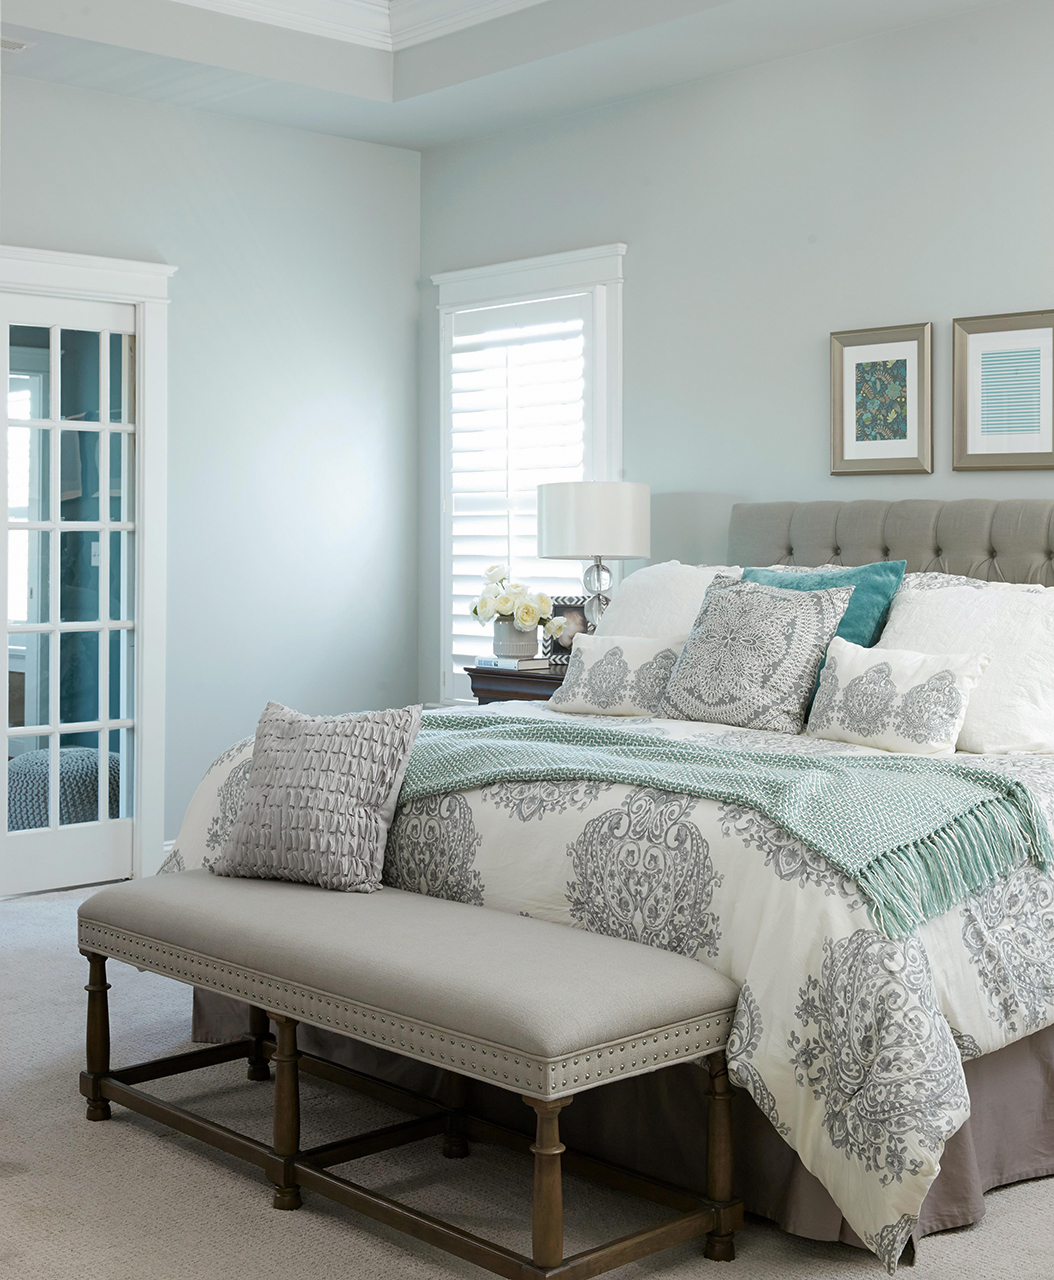 23 Brilliant Blue Color Schemes For Every Design Style Better Homes Gardens